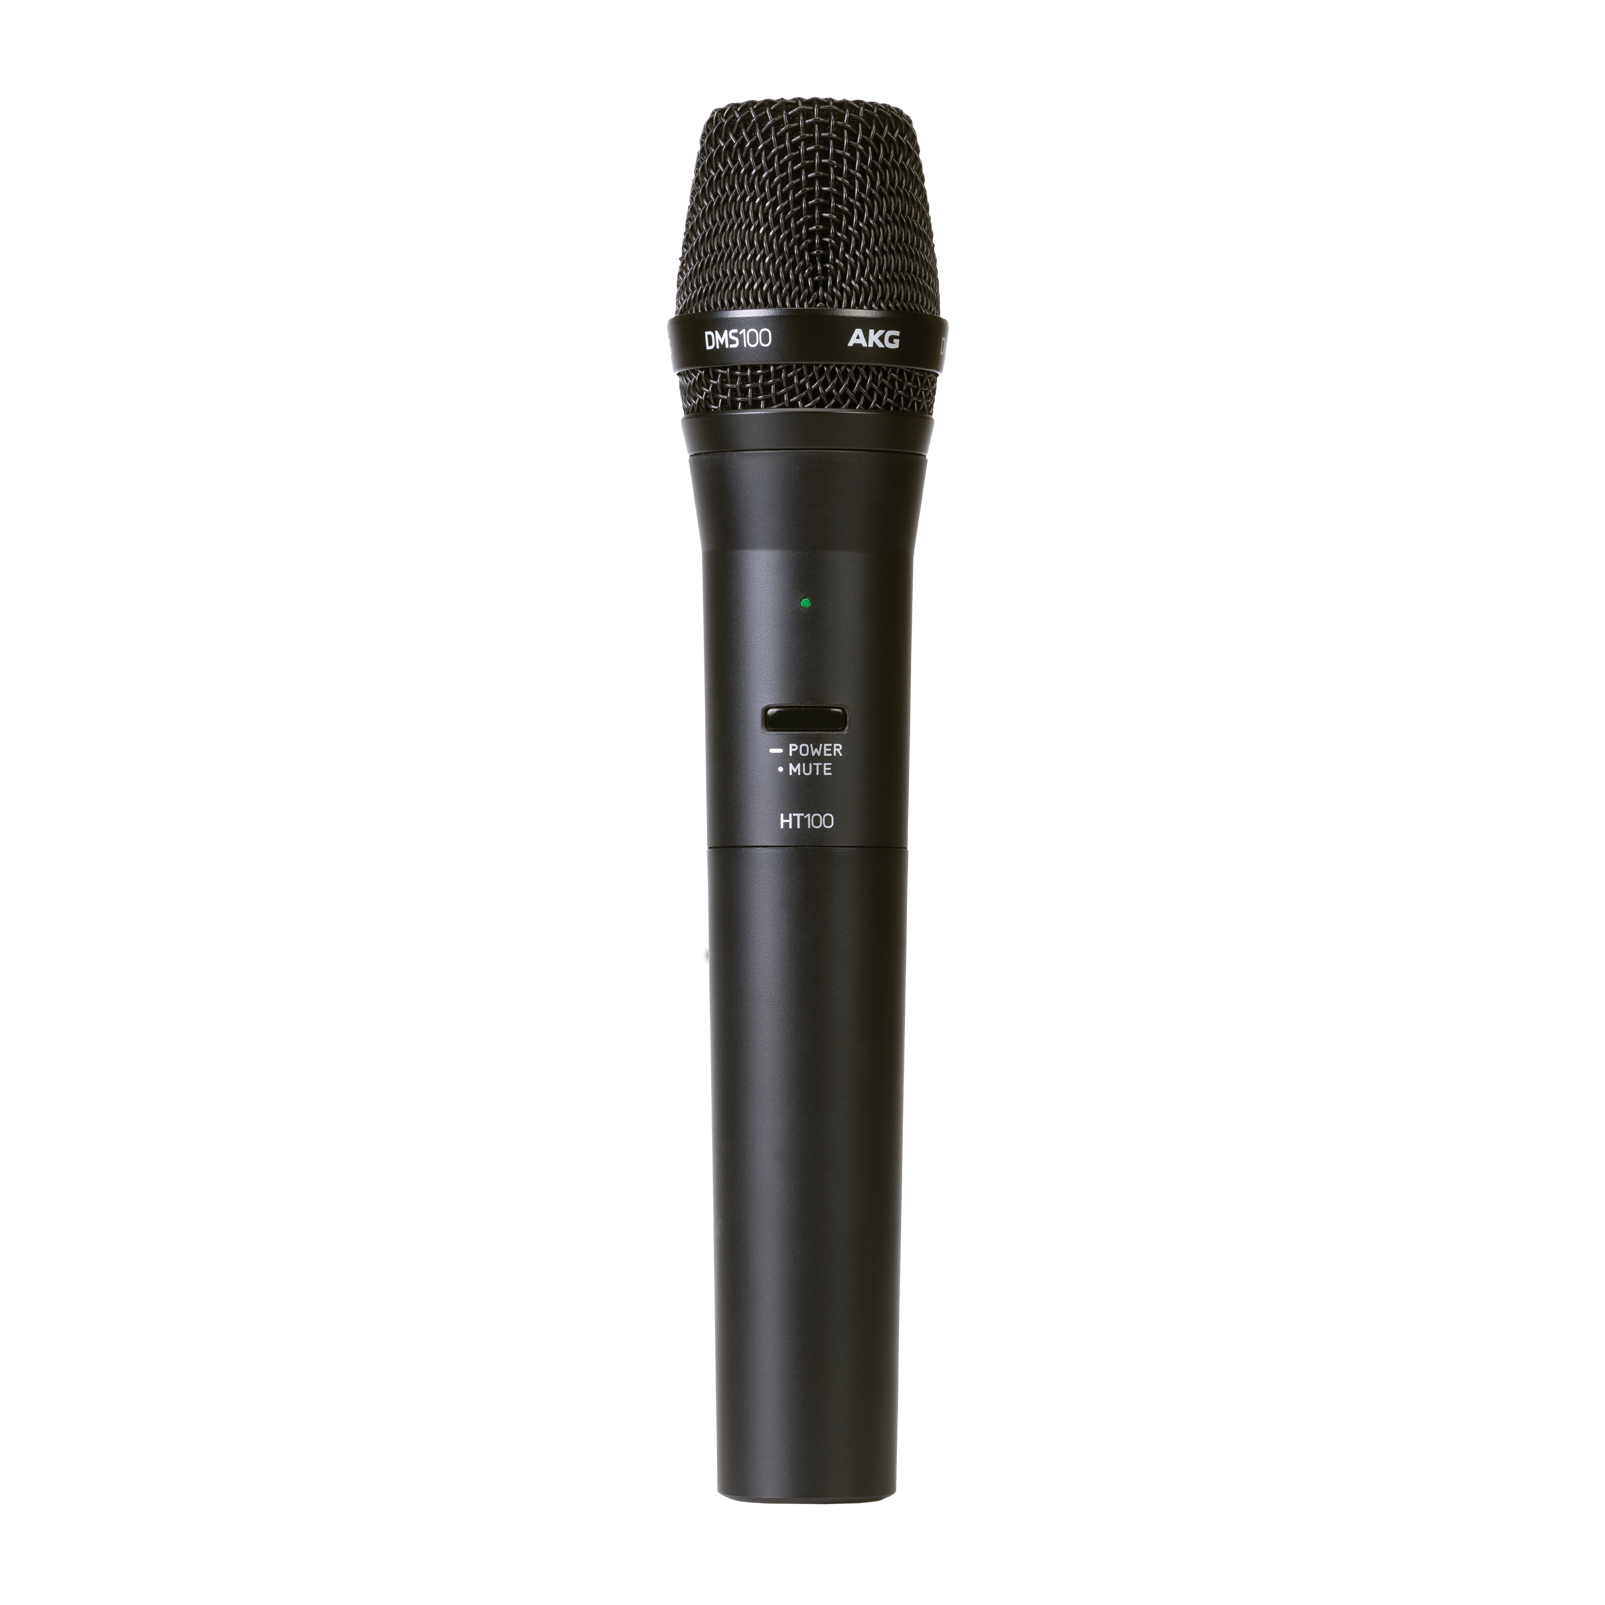 DMS100 Microphone Set - Black - Digital wireless microphone system - Detailshot 1